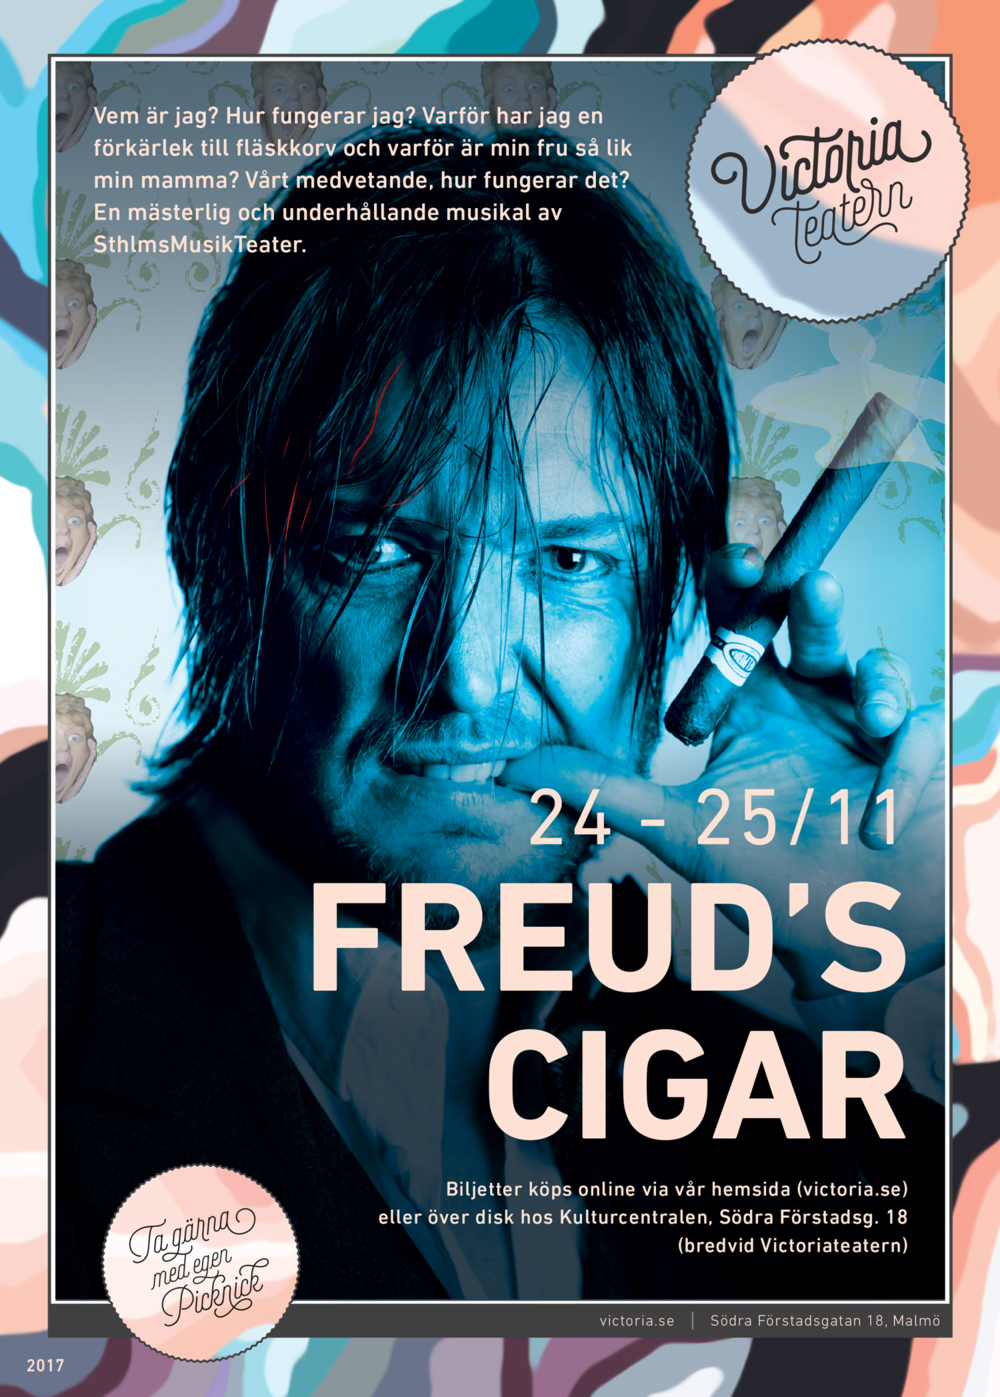 freuds_cigar.png